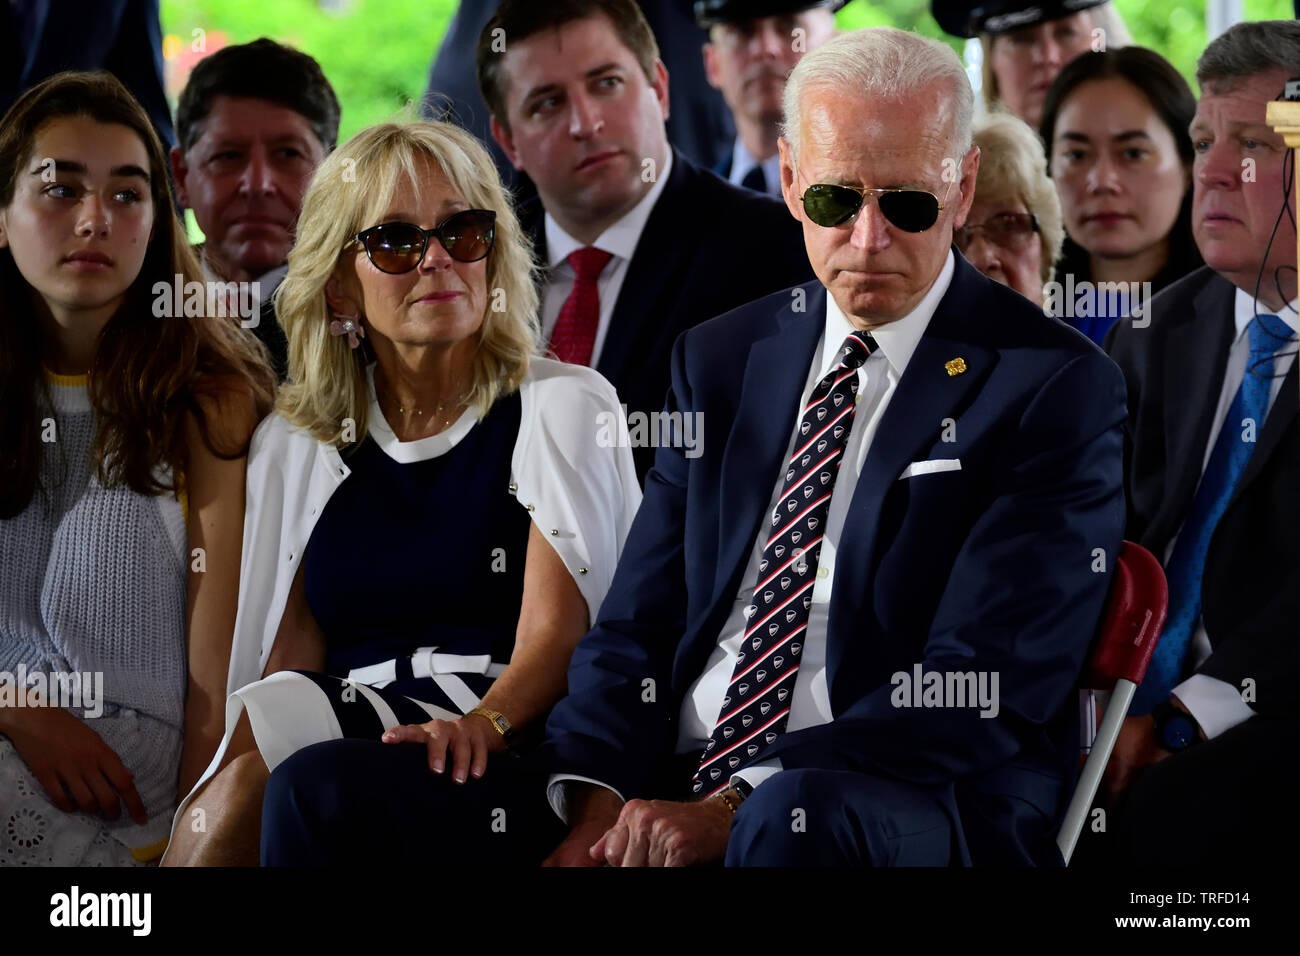 Presidential Hopeful Former Vice President Joe Biden With Sunglasses Joined By Dr Jill Biden And Granddaughter Natalie Biden On His Side Attend T Stock Photo Alamy